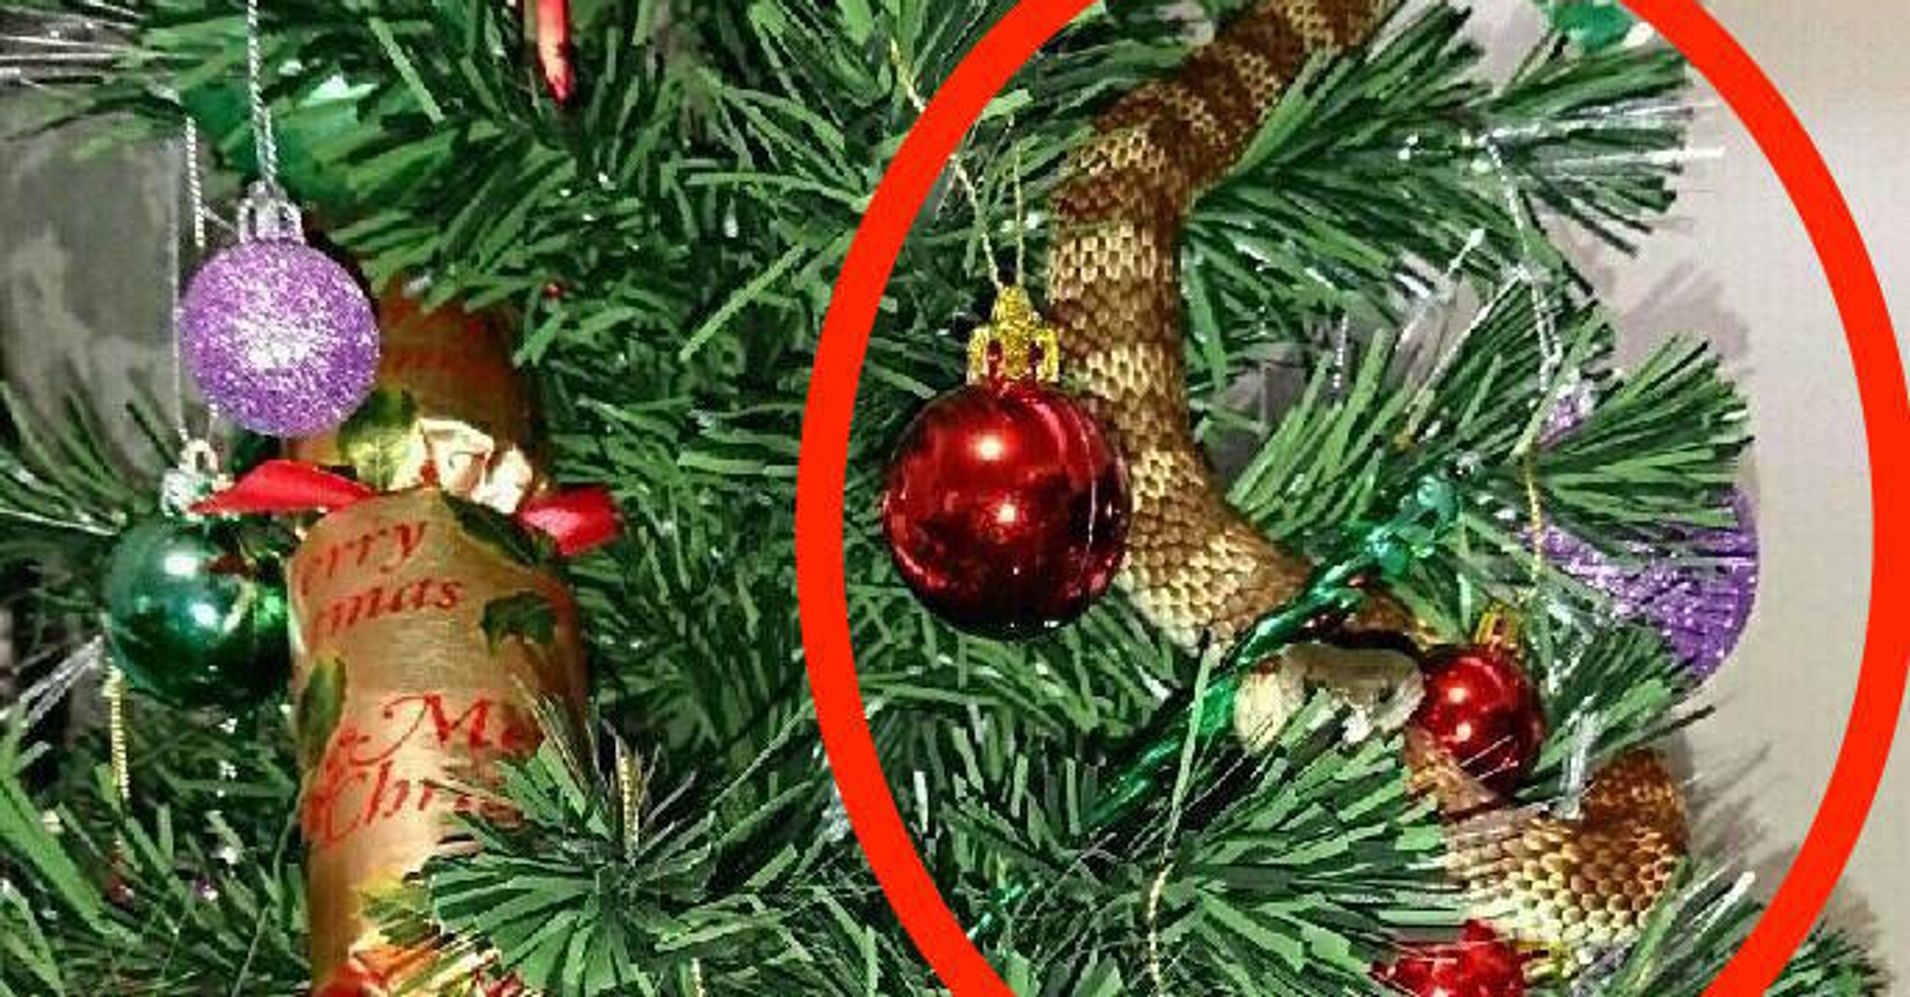 Deadly Snake Hides In Christmas Tree Just Like A